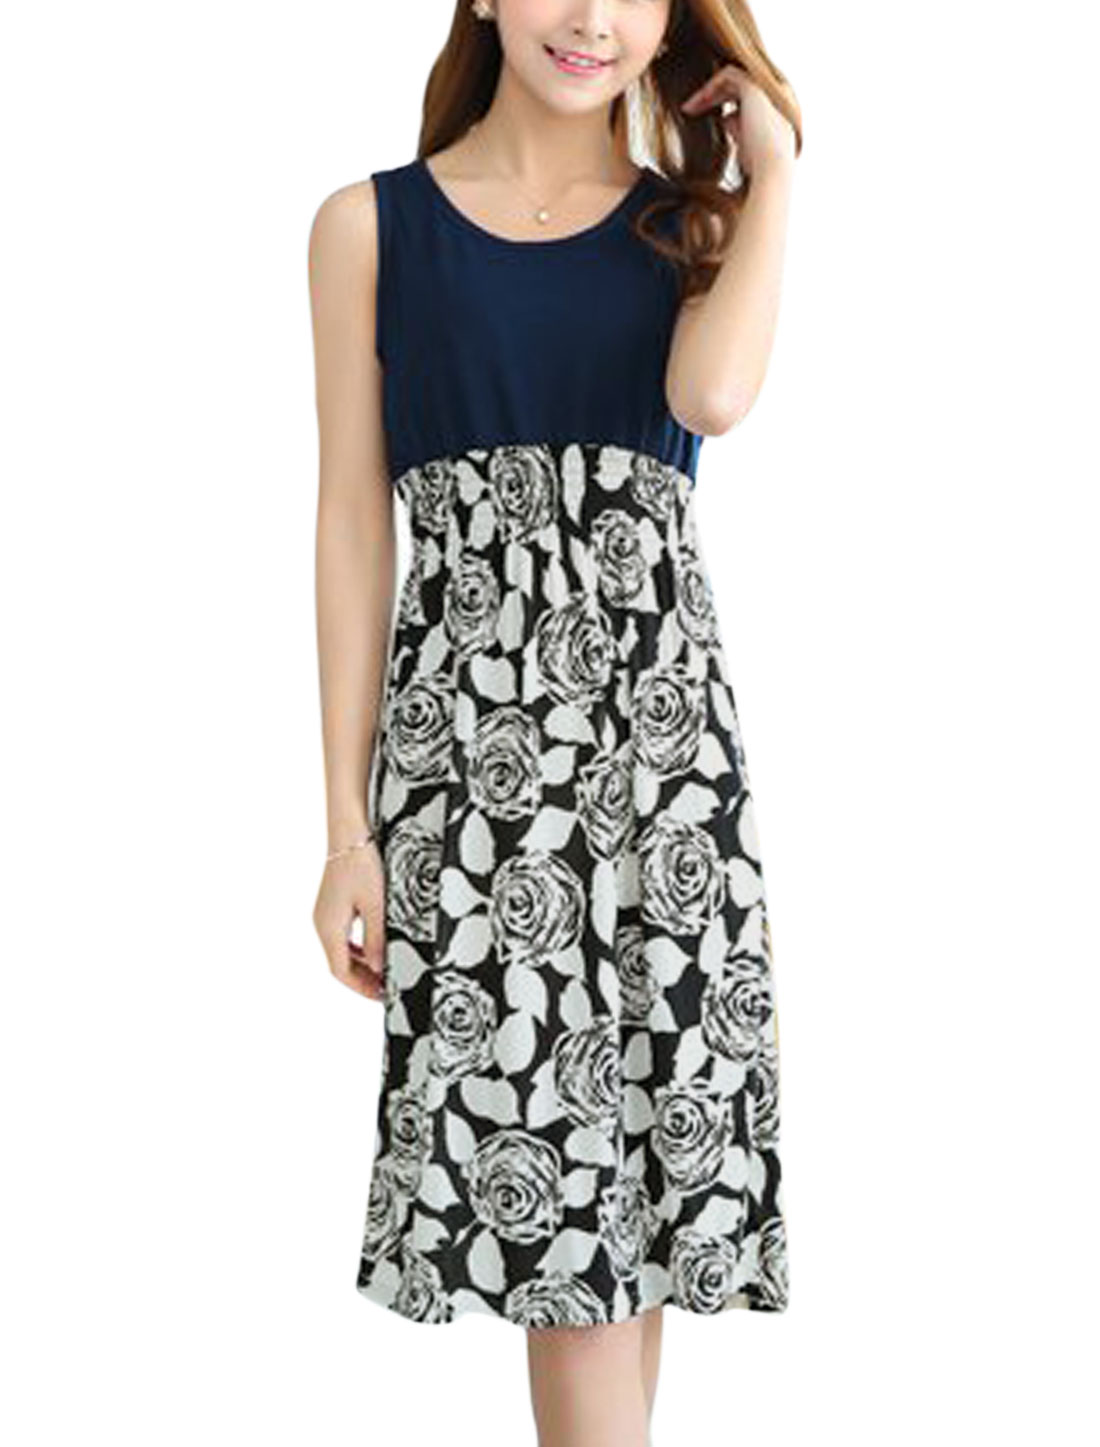 Woman Roses Pattern Round Neck Sleeveless A Line Dress Navy Blue White XS